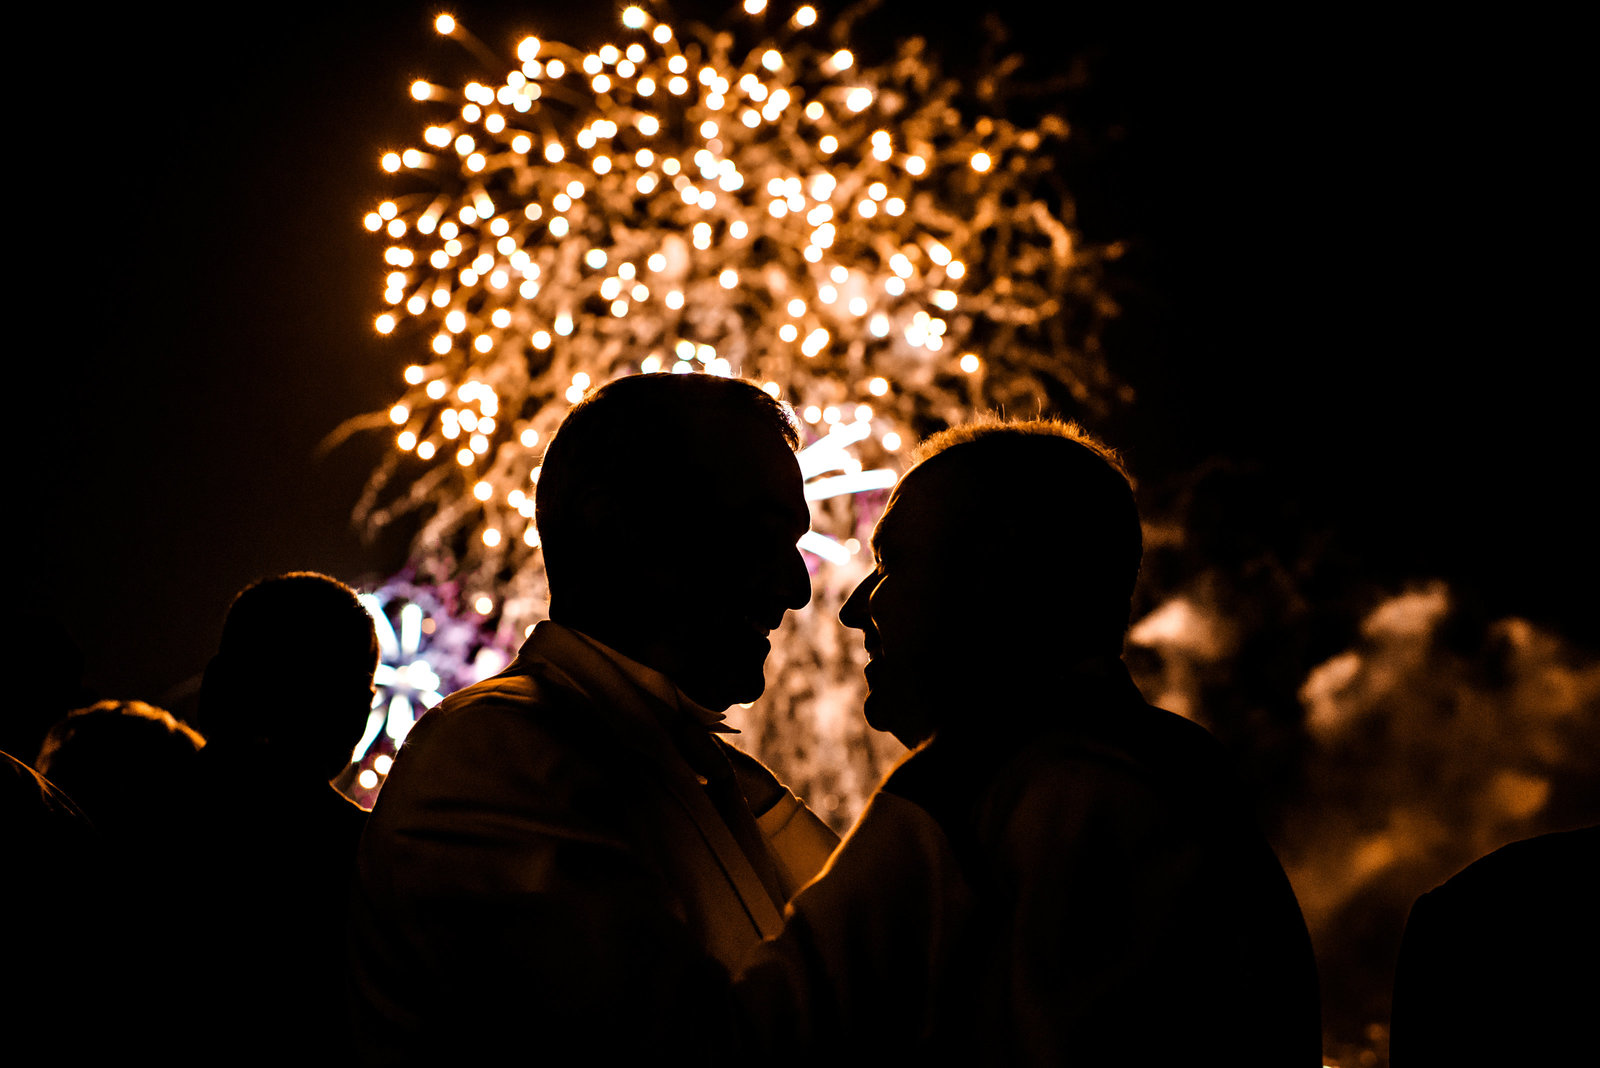 Fireworks light up the night sky and silhouette these two grooms on their wedding day at the Hilton Penns Landing.